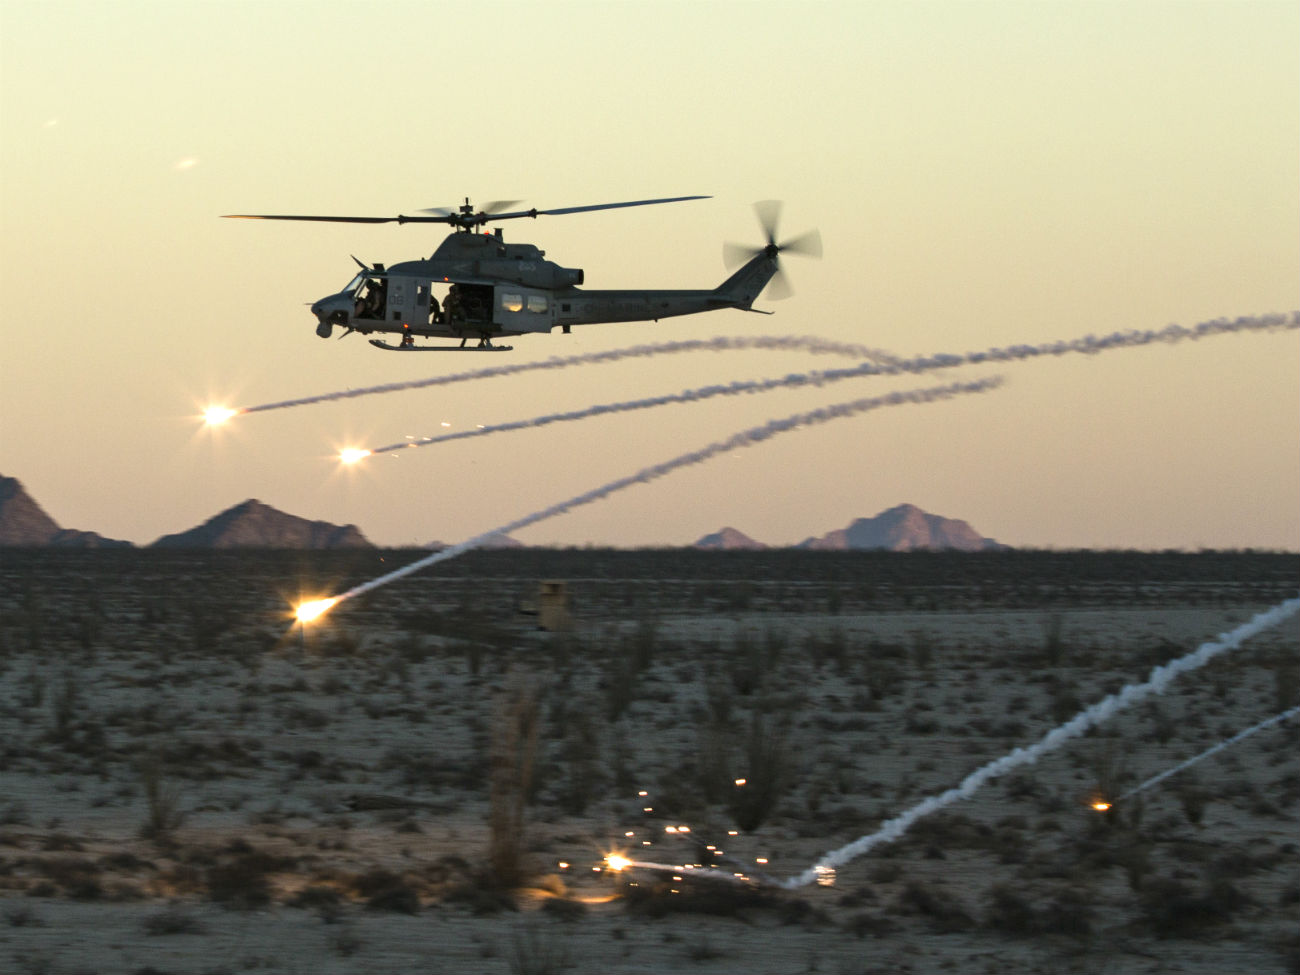 Bell UH-1 Images Helicopter fires rounds